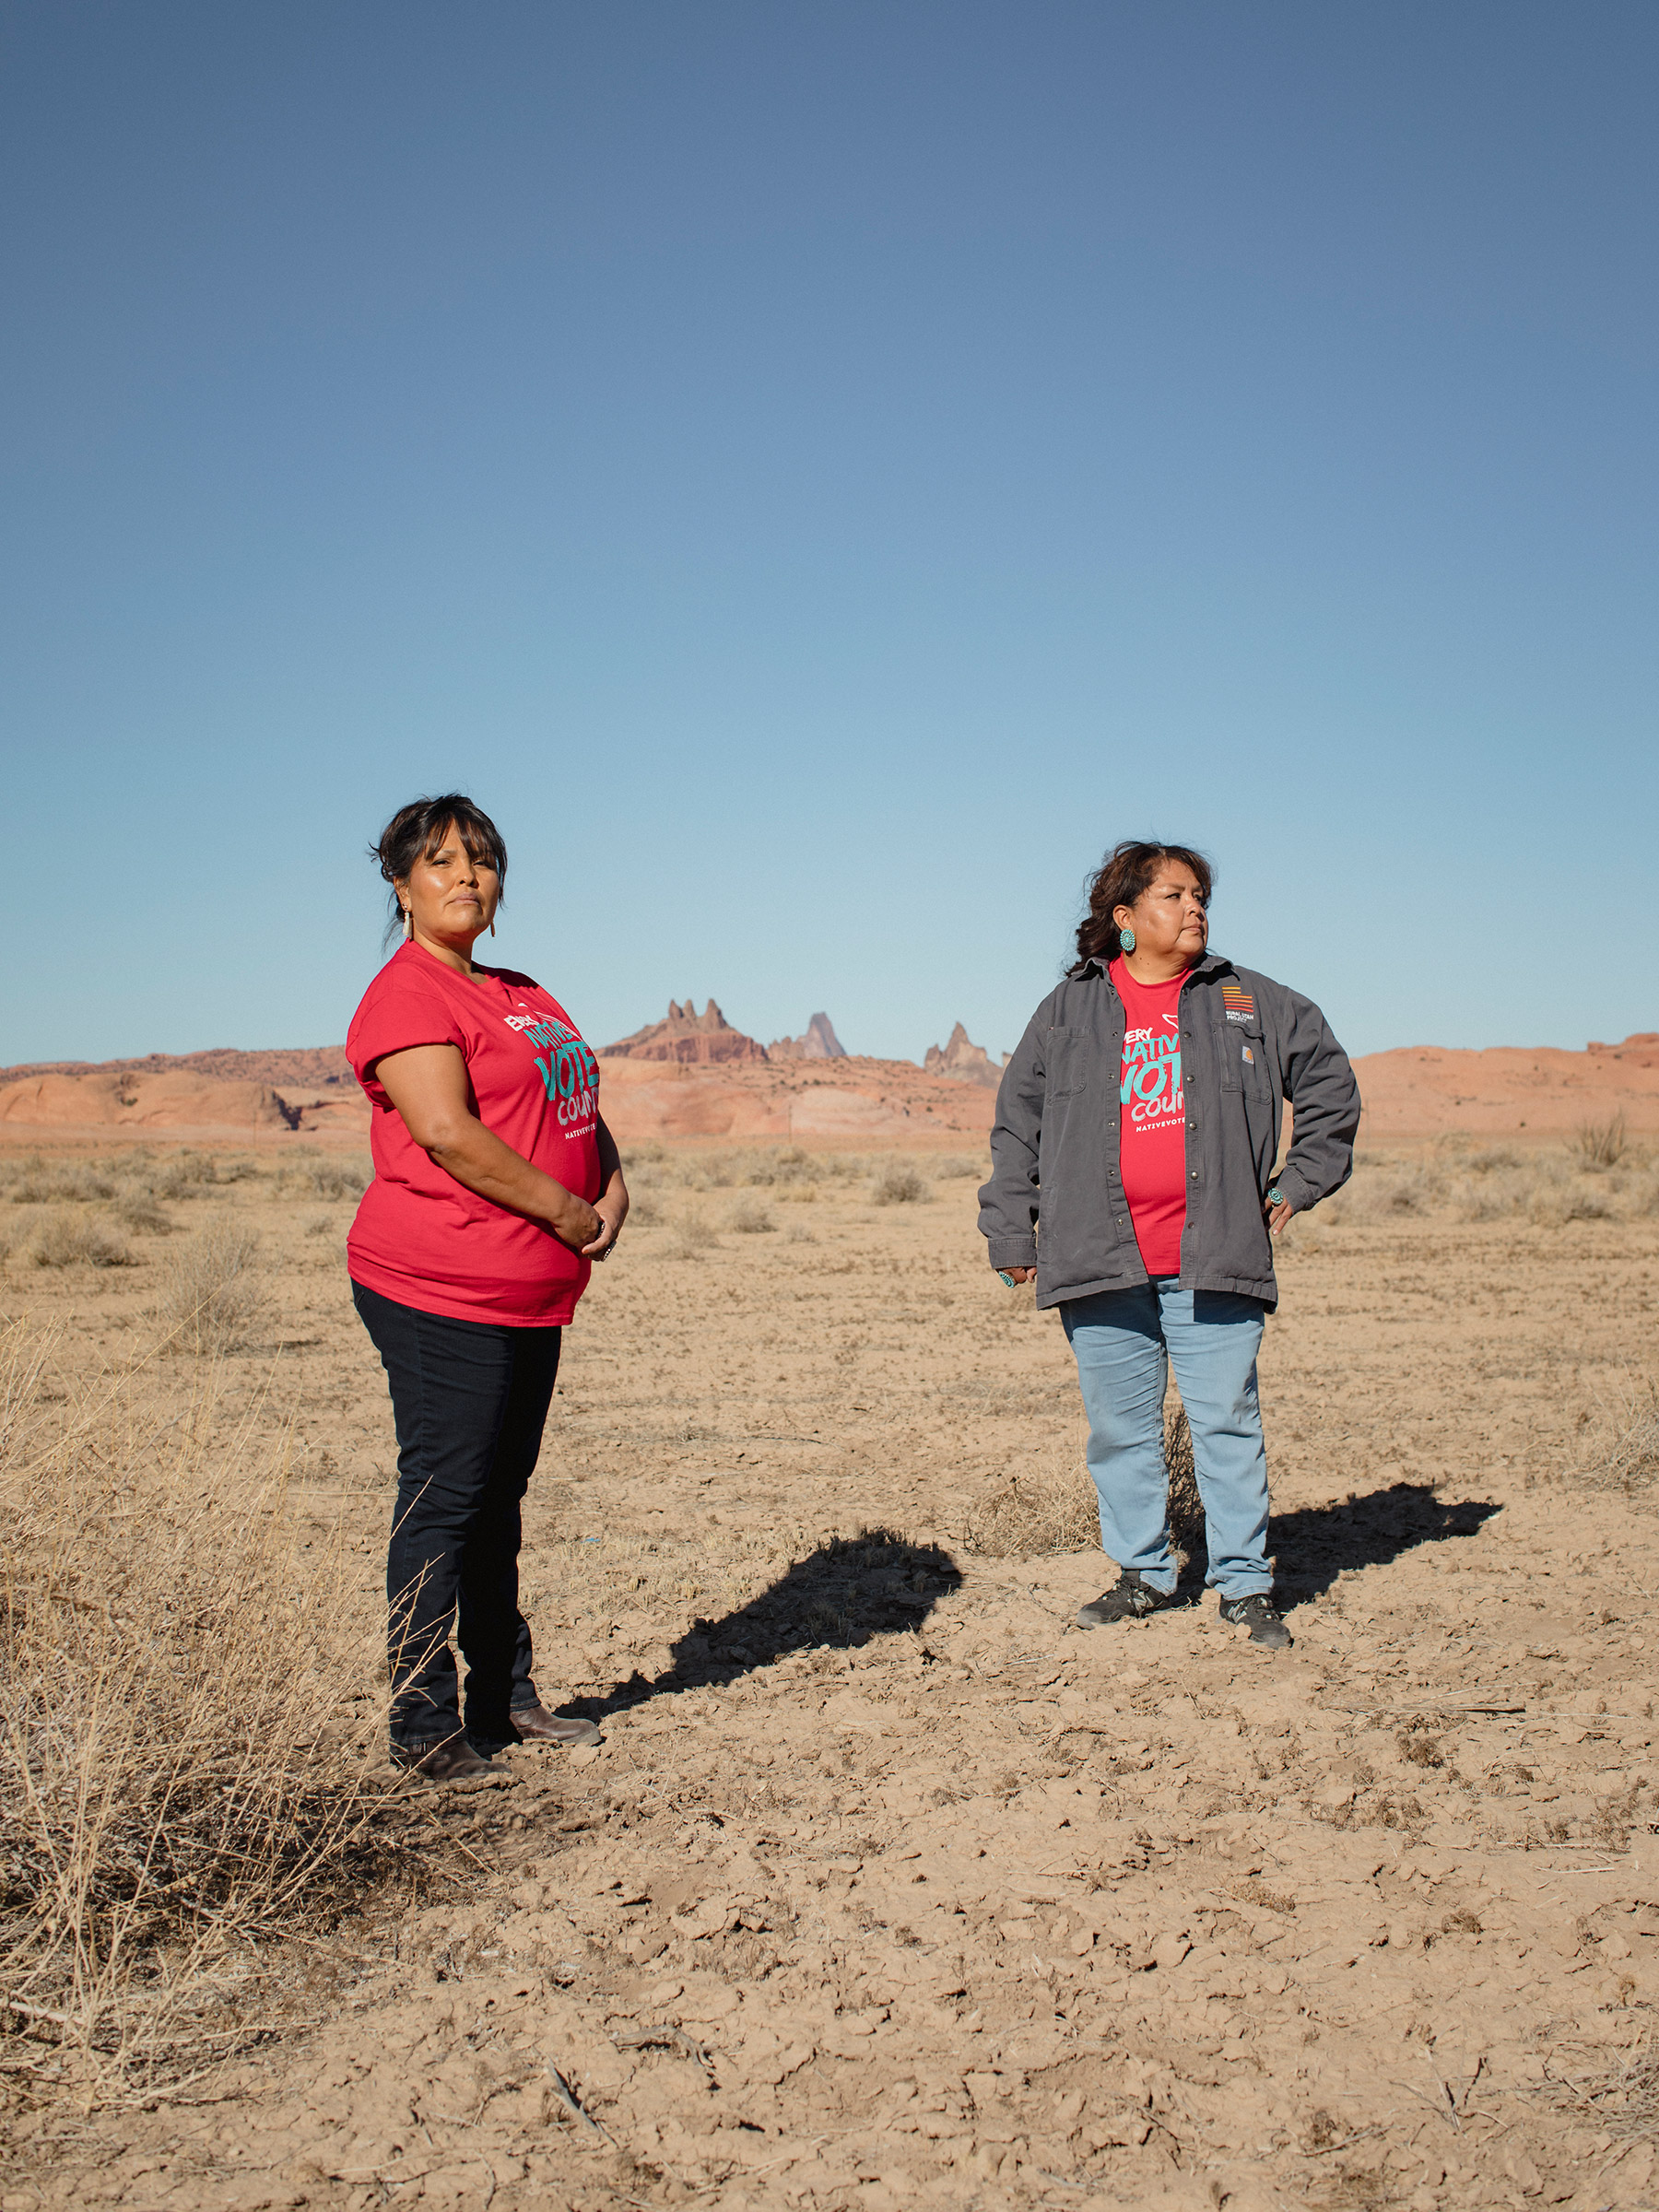 (L-R) Tara Benally and Dalene Redhorse pose for a portrait in front of Church Rock in Navajo County, Arizona on December 4, 2020. CREDIT: Adria Malcolm for TIME Magazine